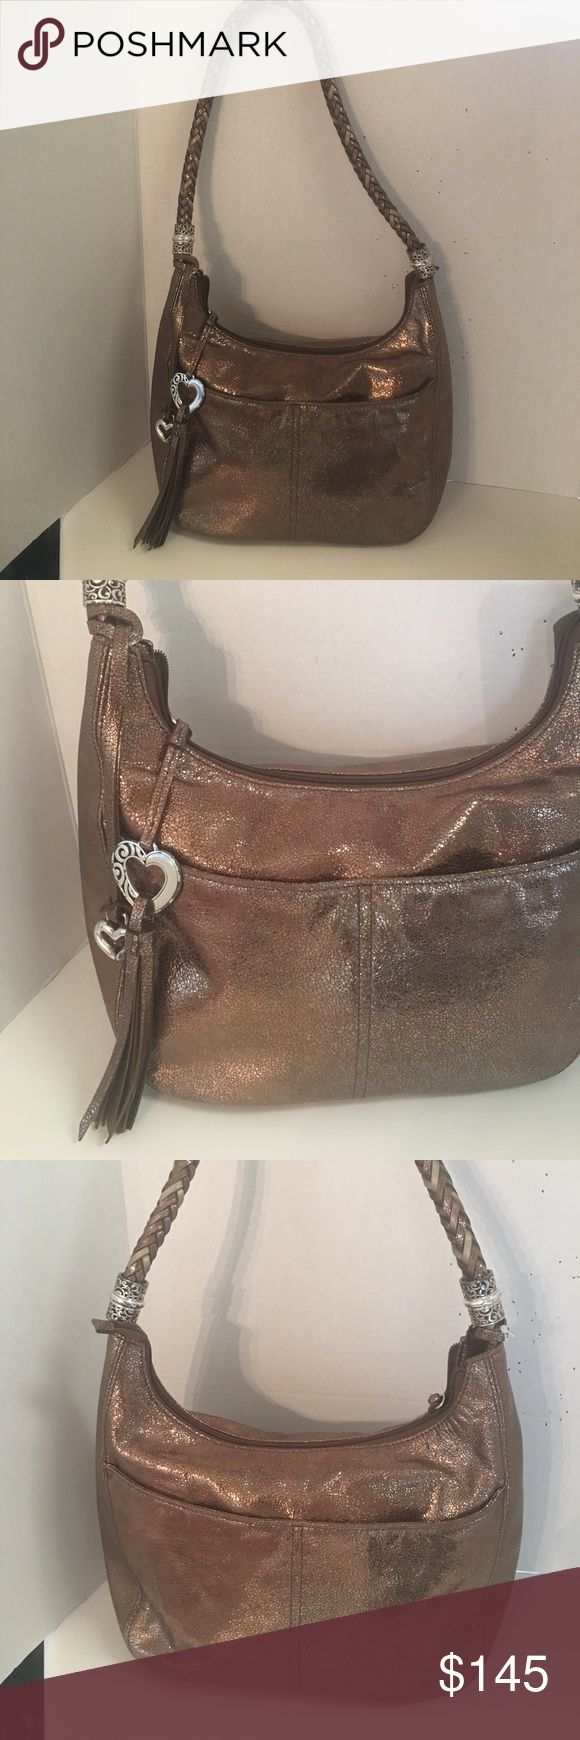 Brighton Metallic bronze leather Barbados hobo This is a beautiful gently used Breitling Barbados collection metallic bronze leather hobo. Features Silvertone hardware with light signs of wear. Four exterior slip pockets. Zipper closure for main compartment. Beautiful multicolored braided leather strap.  Beige lining with zipper pocket into slip pockets inside. Key clip.  Gorgeous bag very gently used!  No dust bag Brighton Bags Hobos